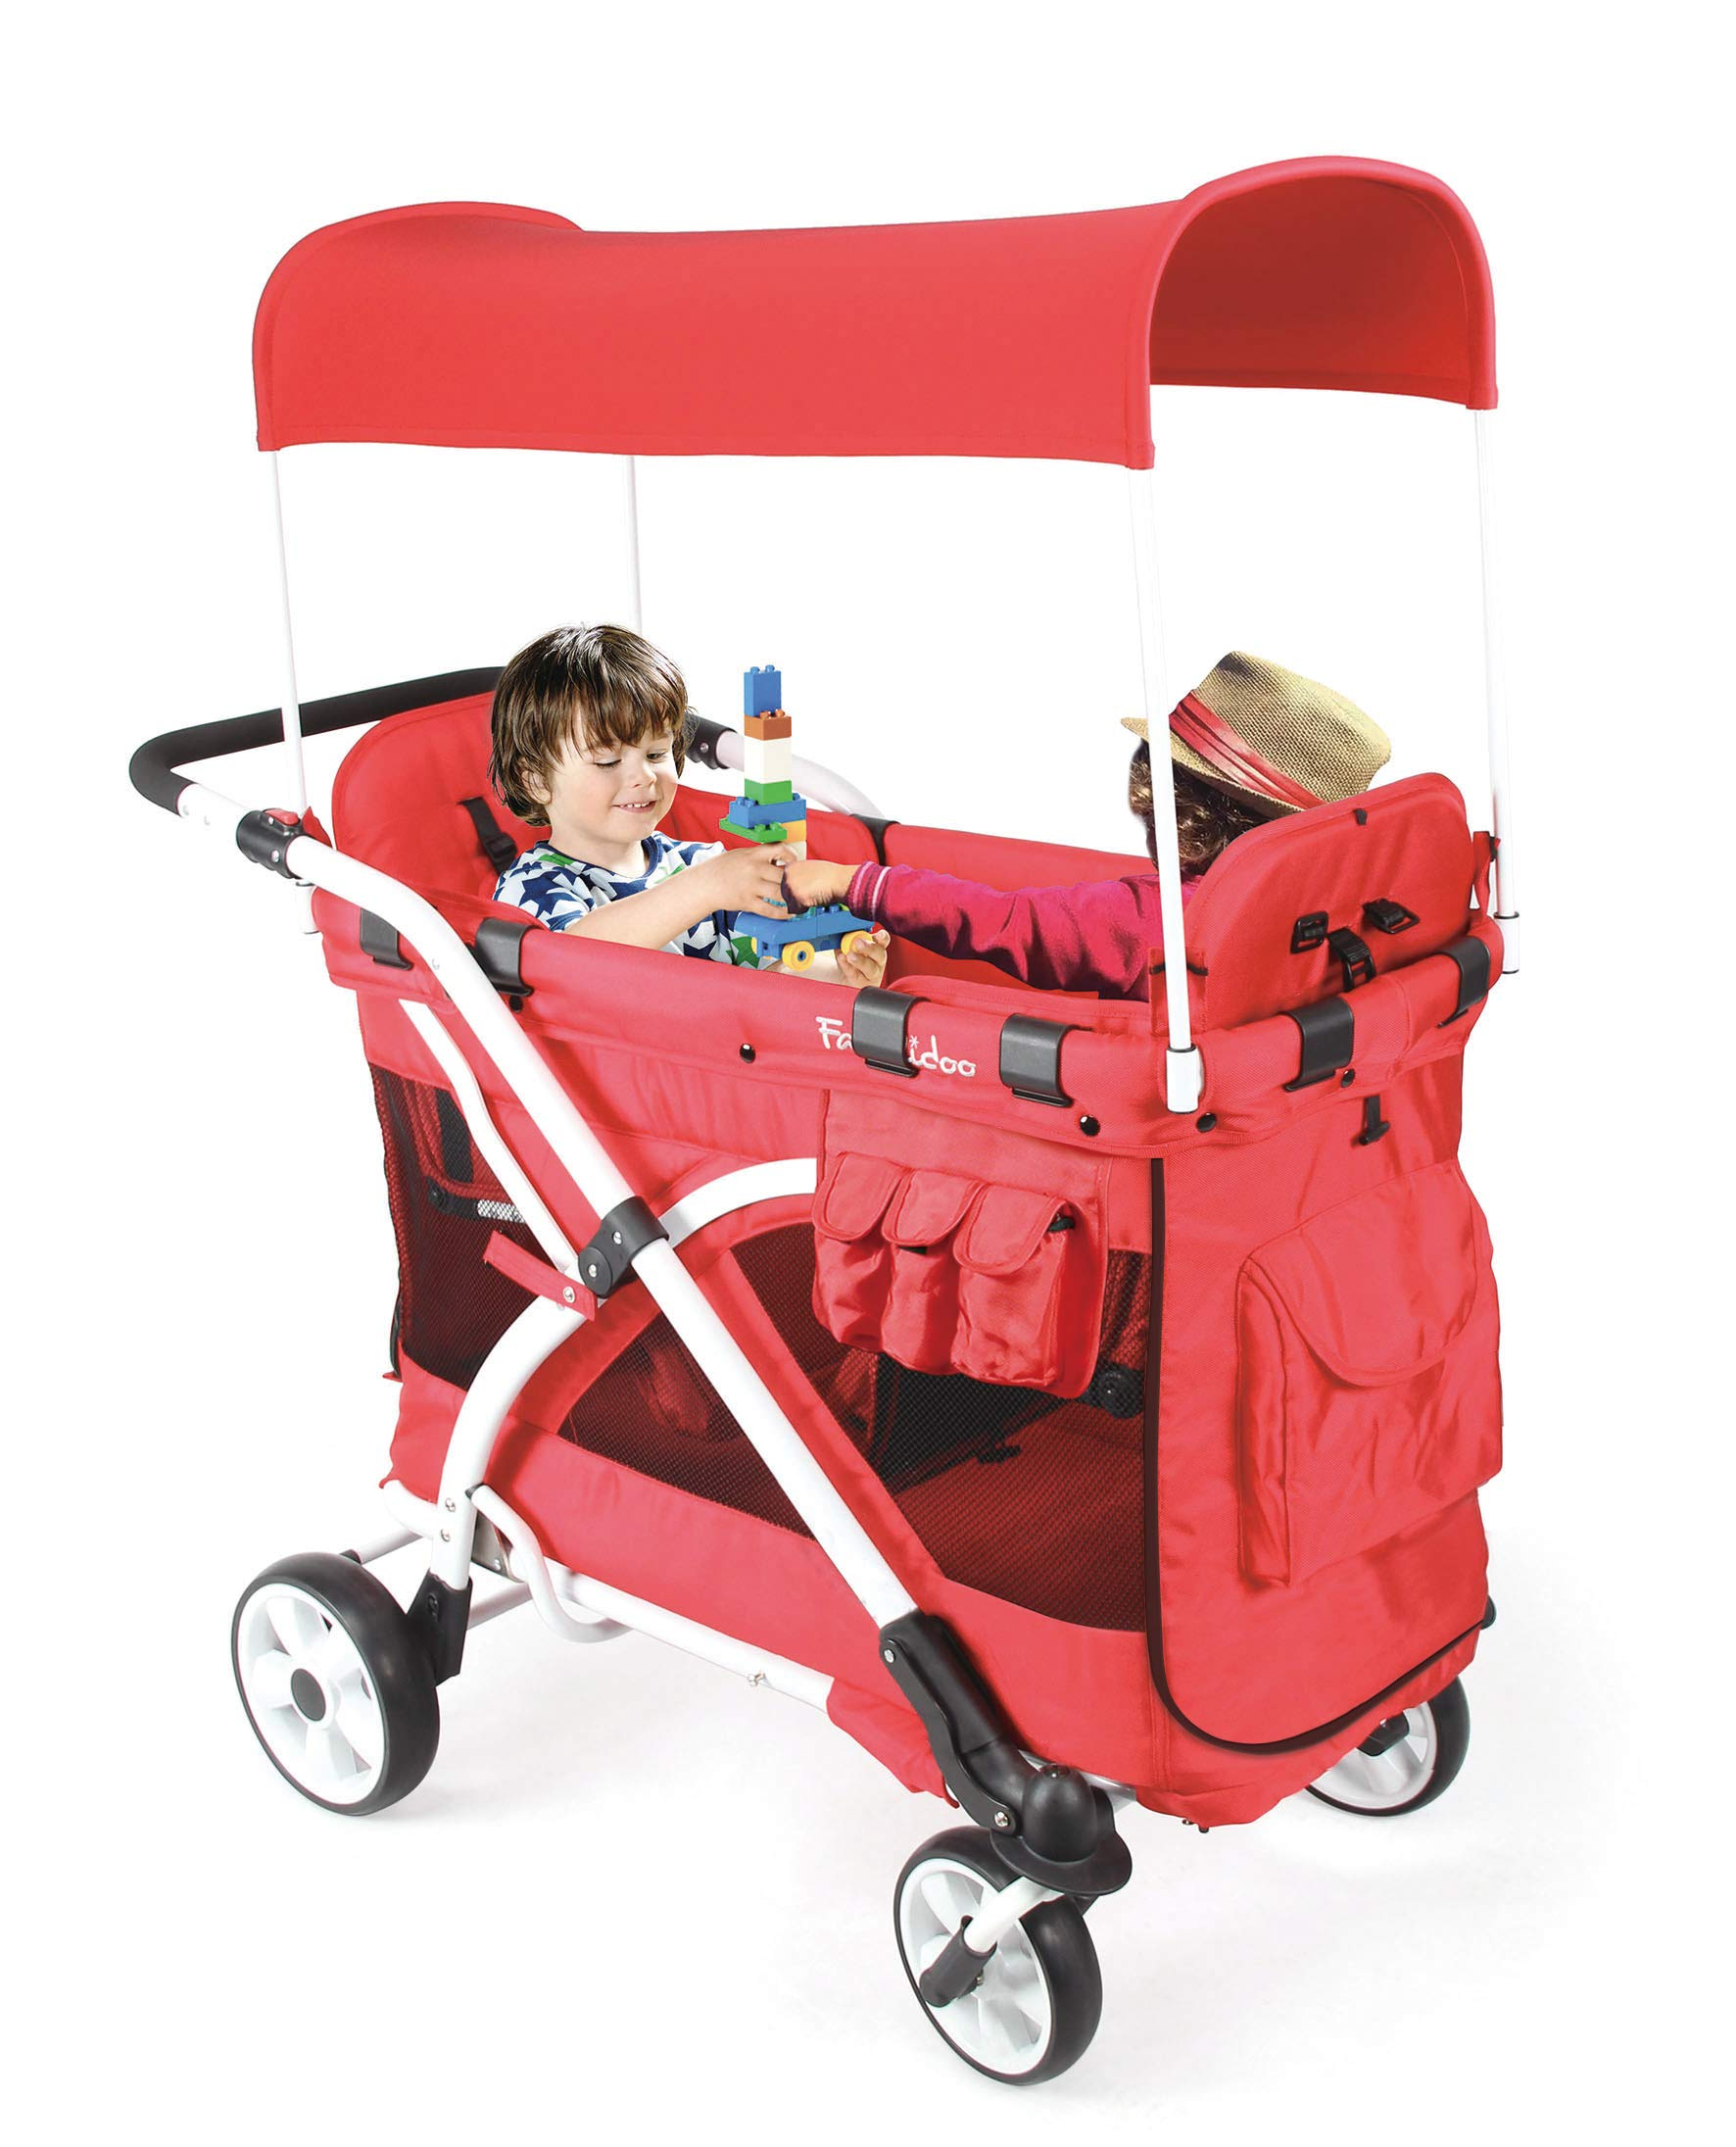 Familidoo Multi-Purpose 6 in 1 Large Twin Size Toddler Baby Folding Stroller Chariot Wagon, Red